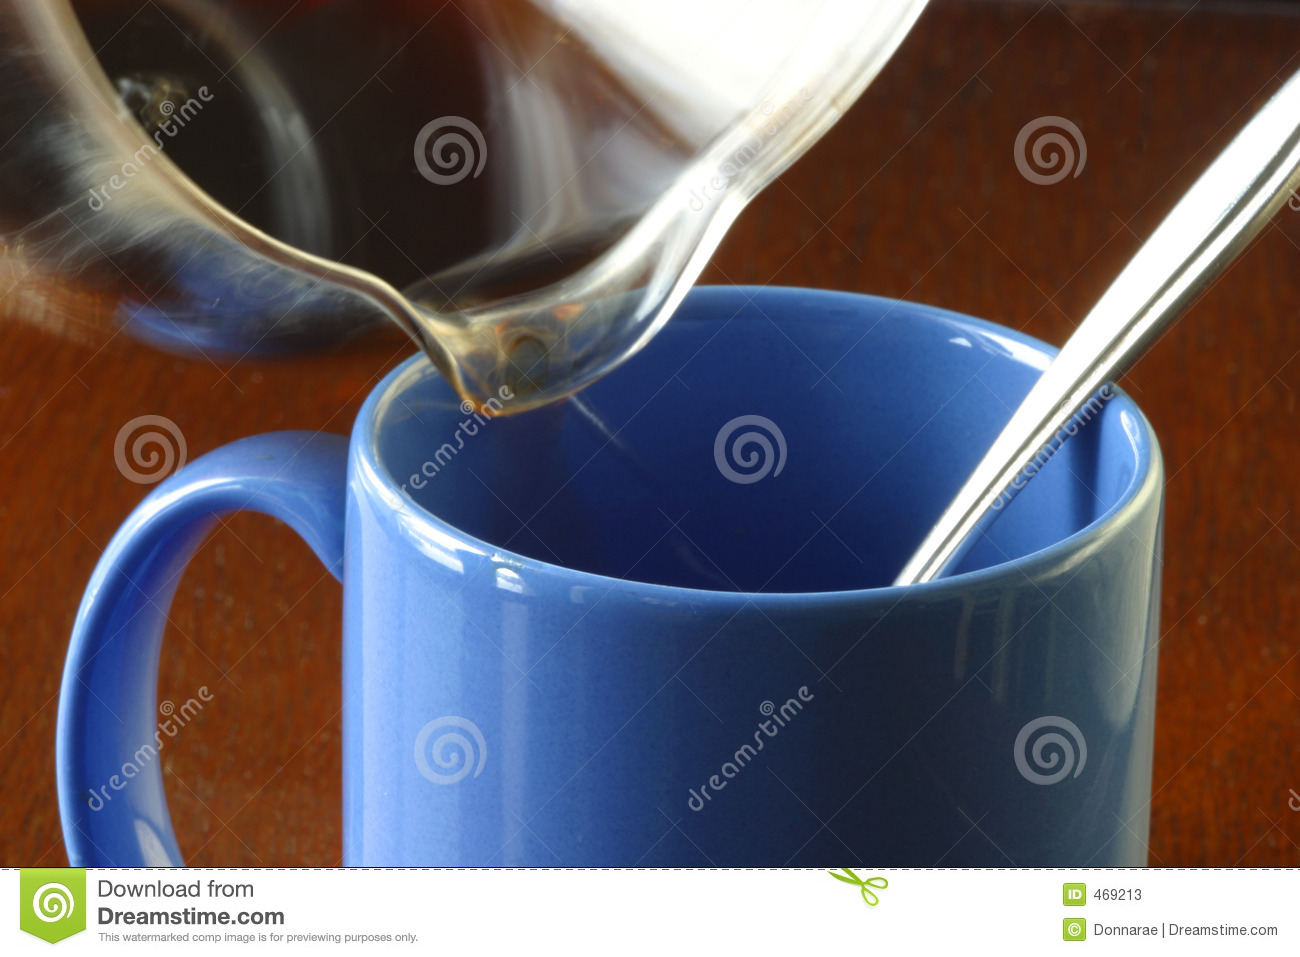 Hot morning coffee being poured in a coffee mug.